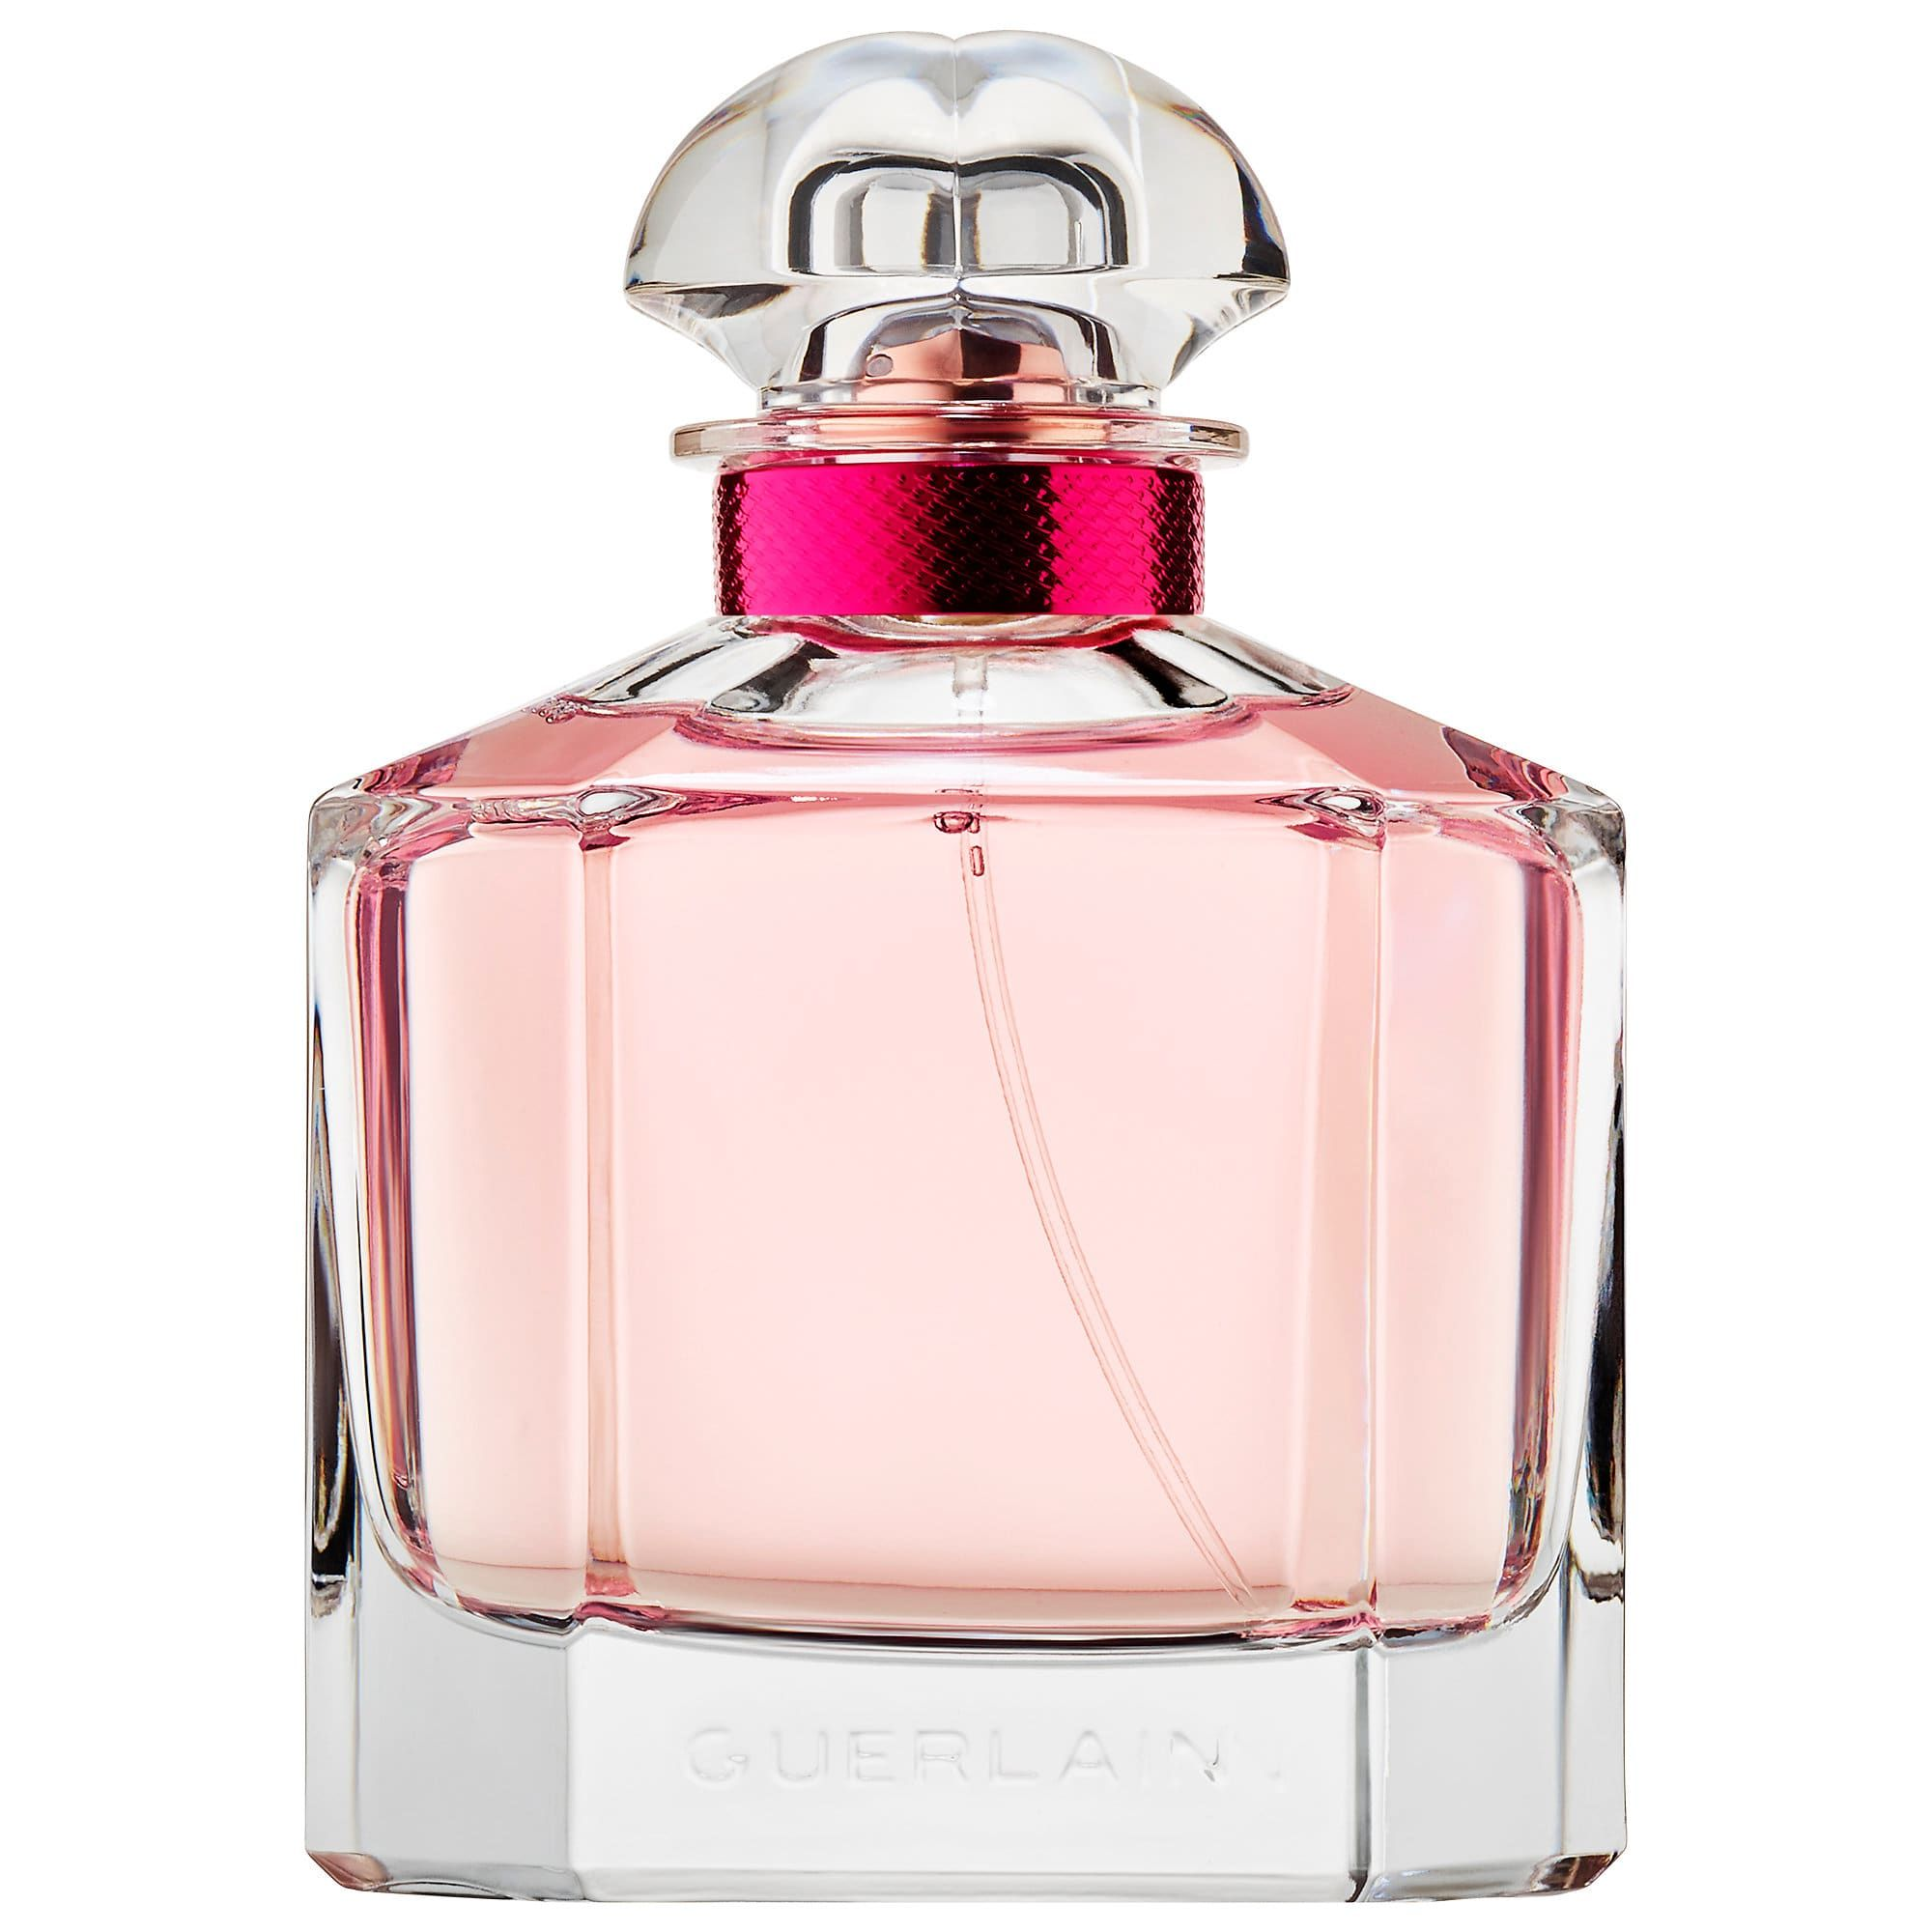 Fragrances New Perfumes 2019 Scents Summer Best And QdCoWExBre